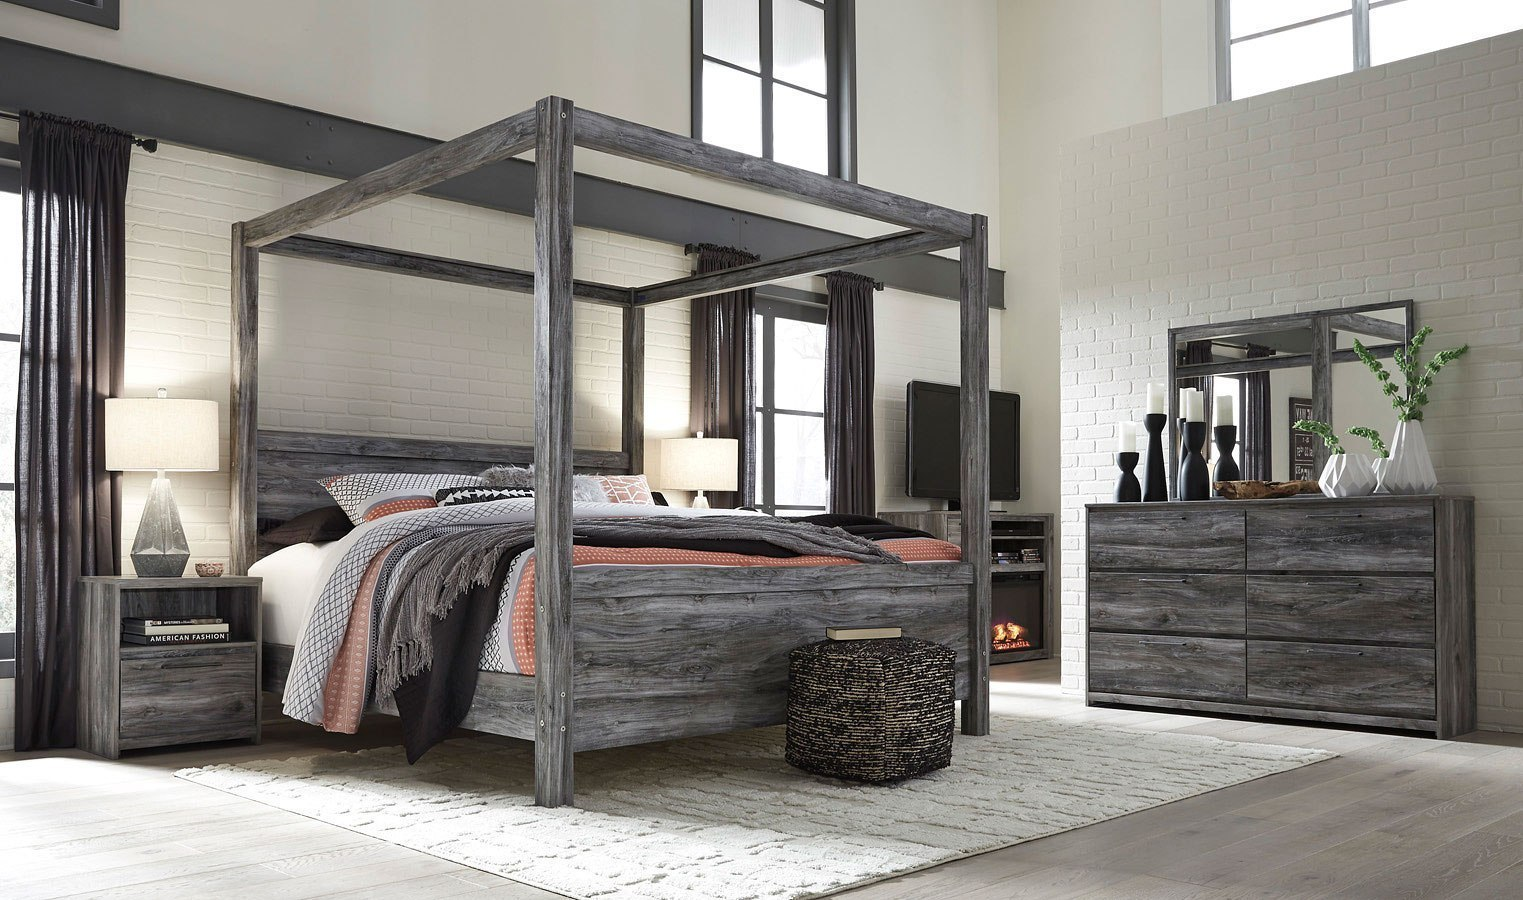 Baystorm Canopy Bedroom Set Signature Design